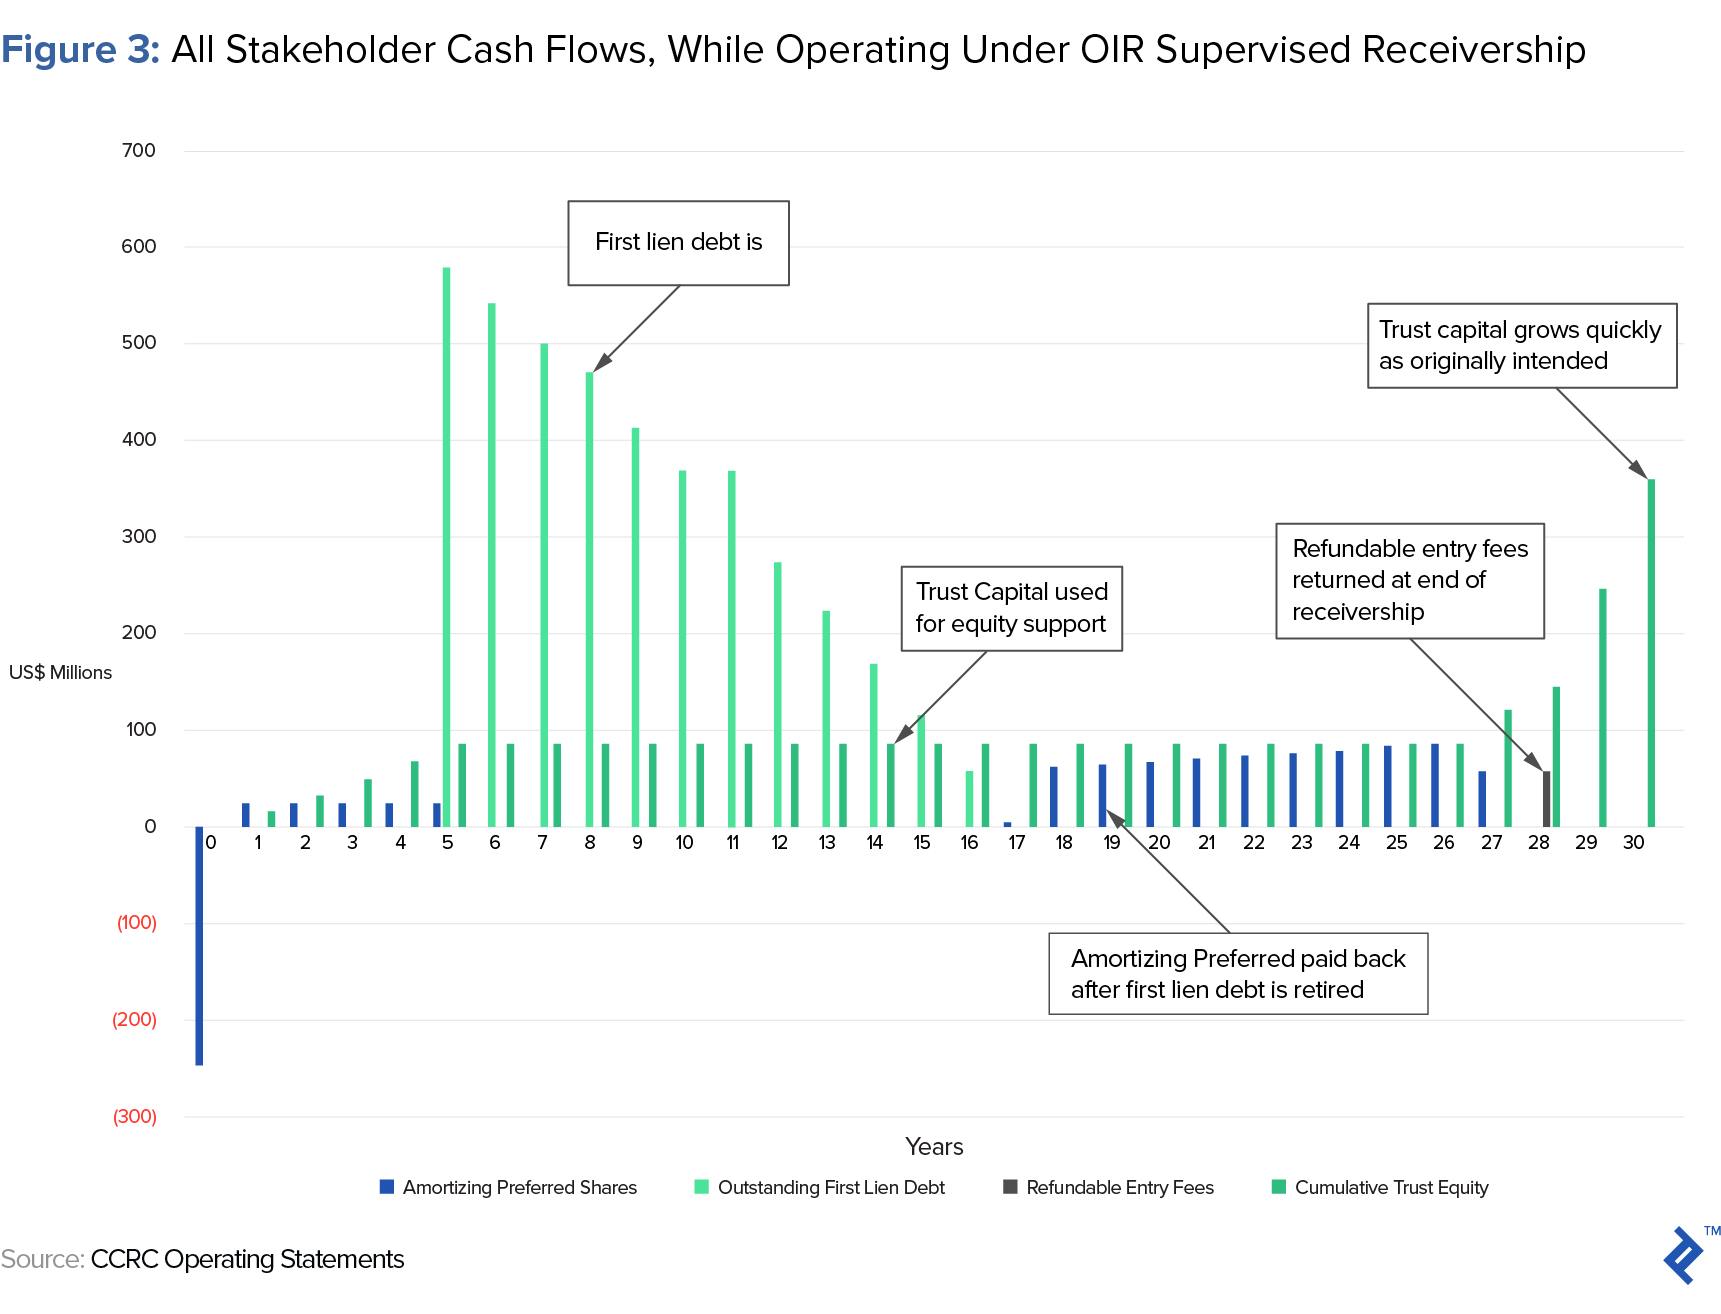 all stakeholder cash flows, while operating under oir supervised receivership